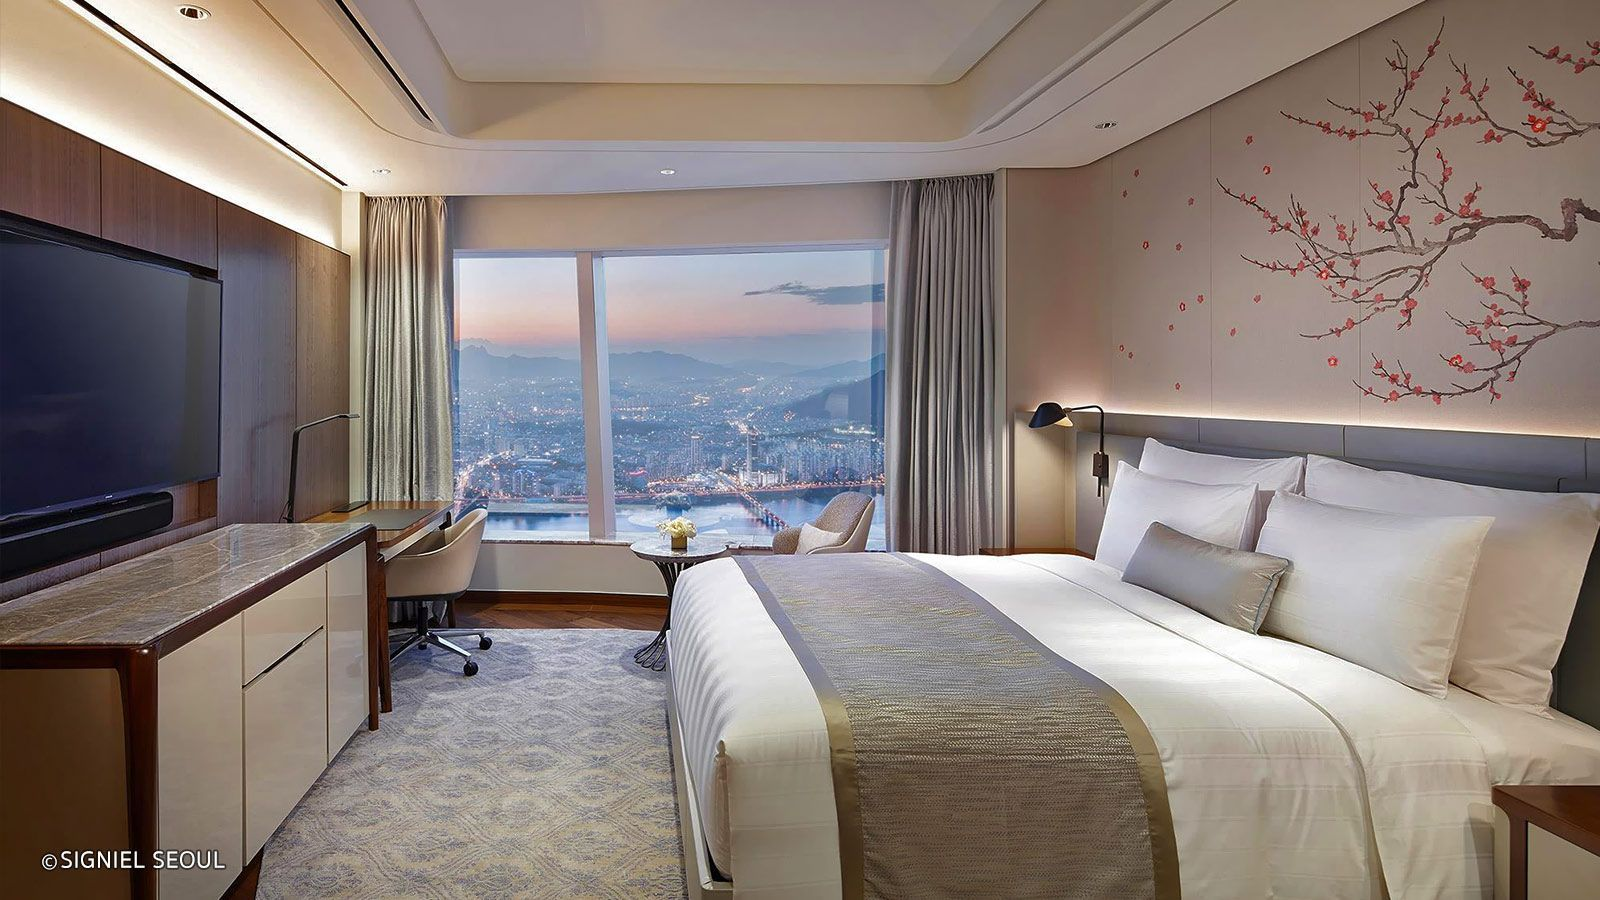 Bedroom interior hd pics image result for south korean bedroom interior design  bedroom